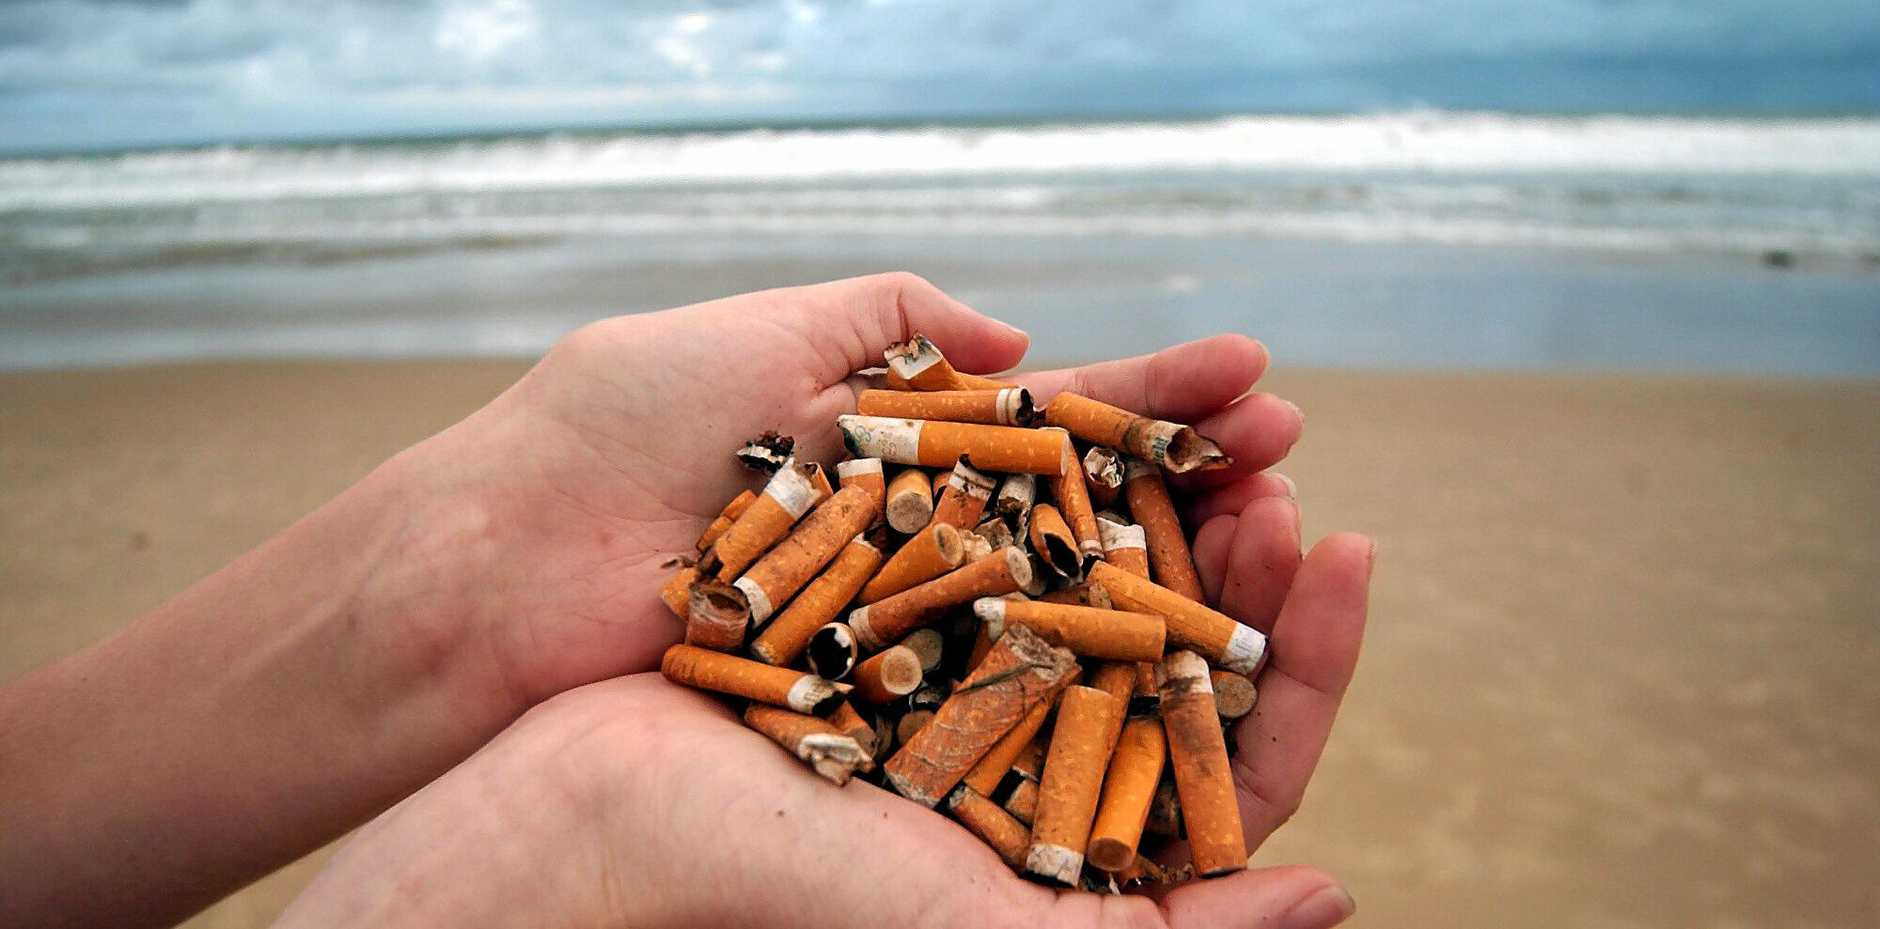 UP IN SMOKE: Noosa Council now has authority to ban smoking in any public area.